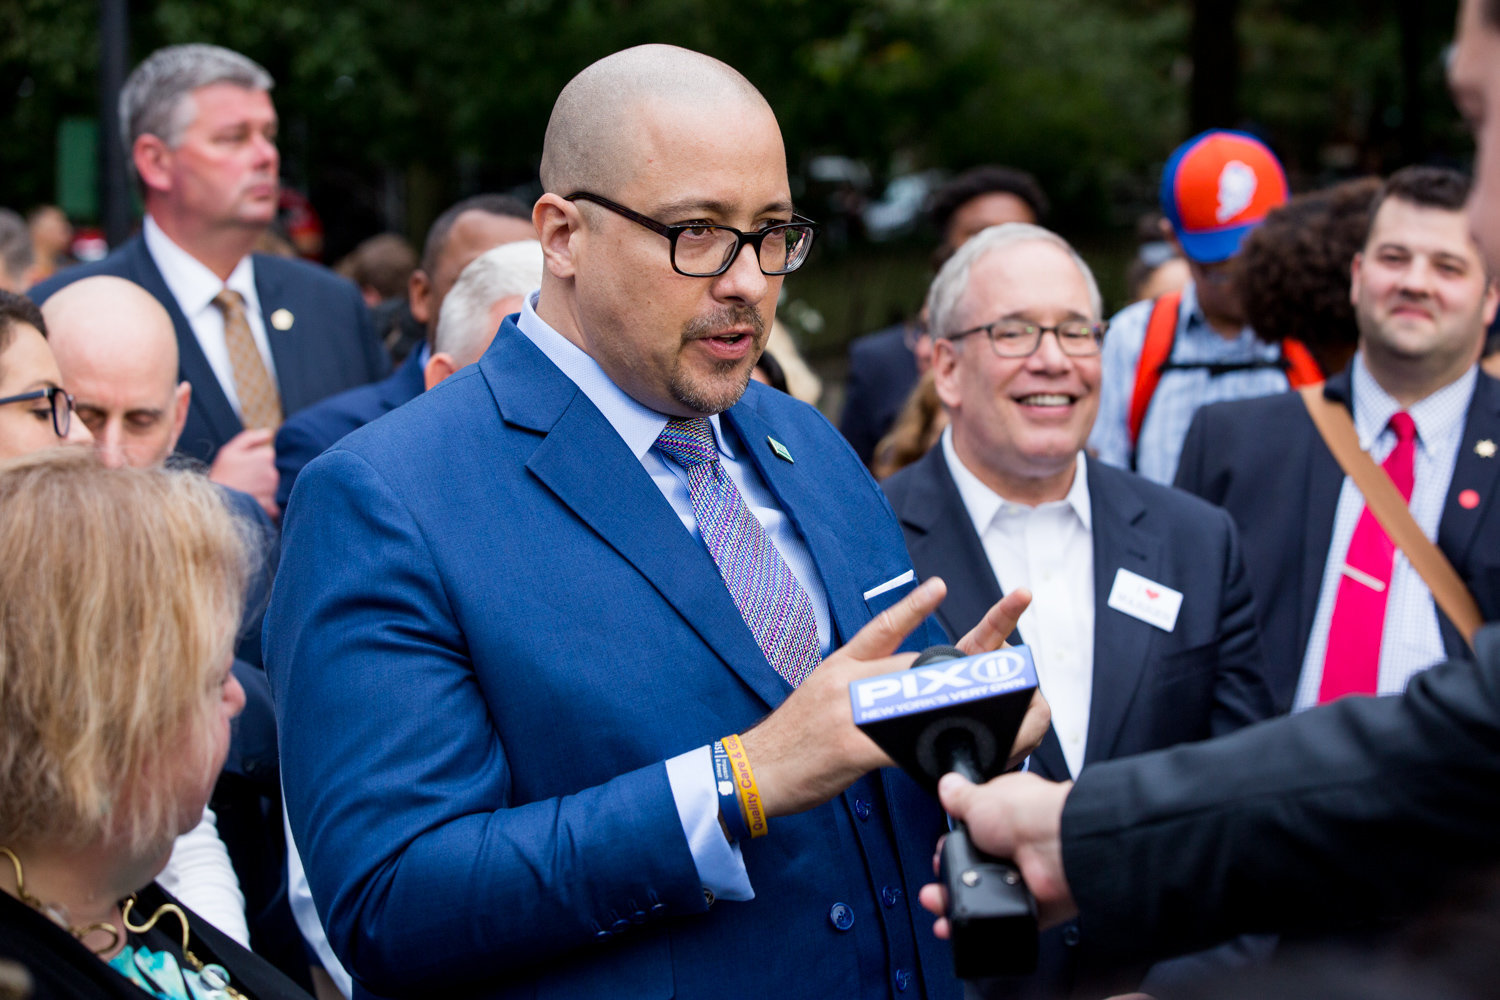 State Sen. Gustavo Rivera nearly lost what had been expected to be a routine endorsement from the Benjamin Franklin Reform Democratic Club just days after informing Assemblyman Jeffrey Dinowitz he was backing leadership change at the club.